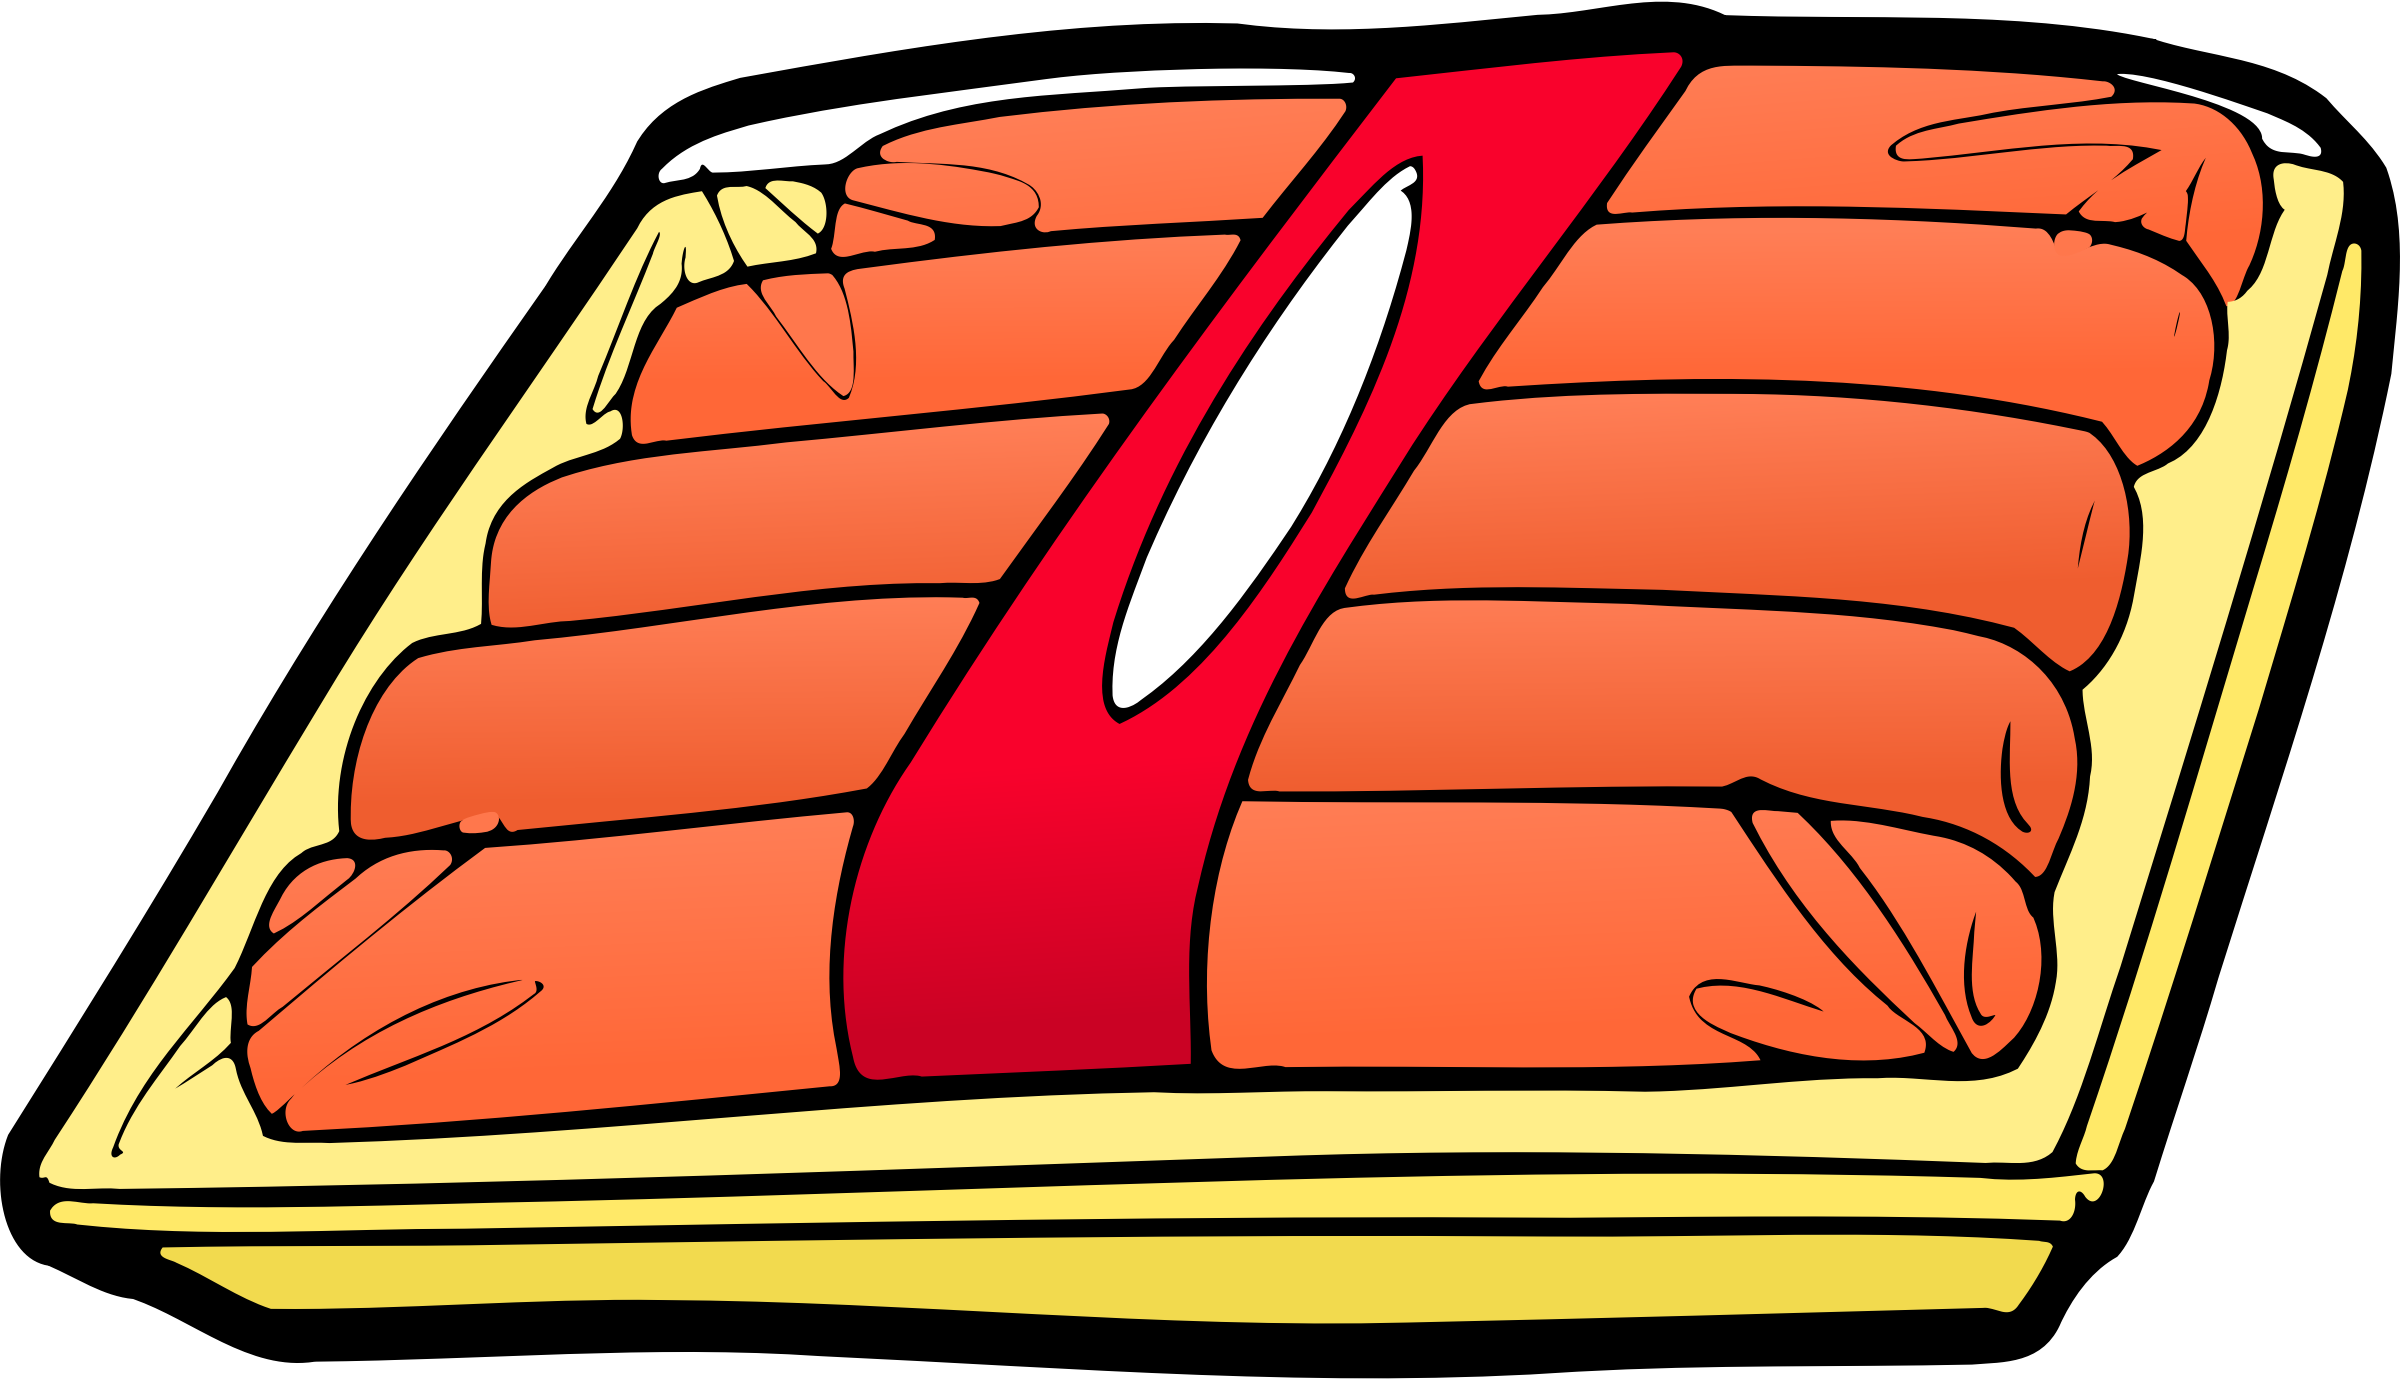 2400x1379 Hot Dogs Vector Clipart Image